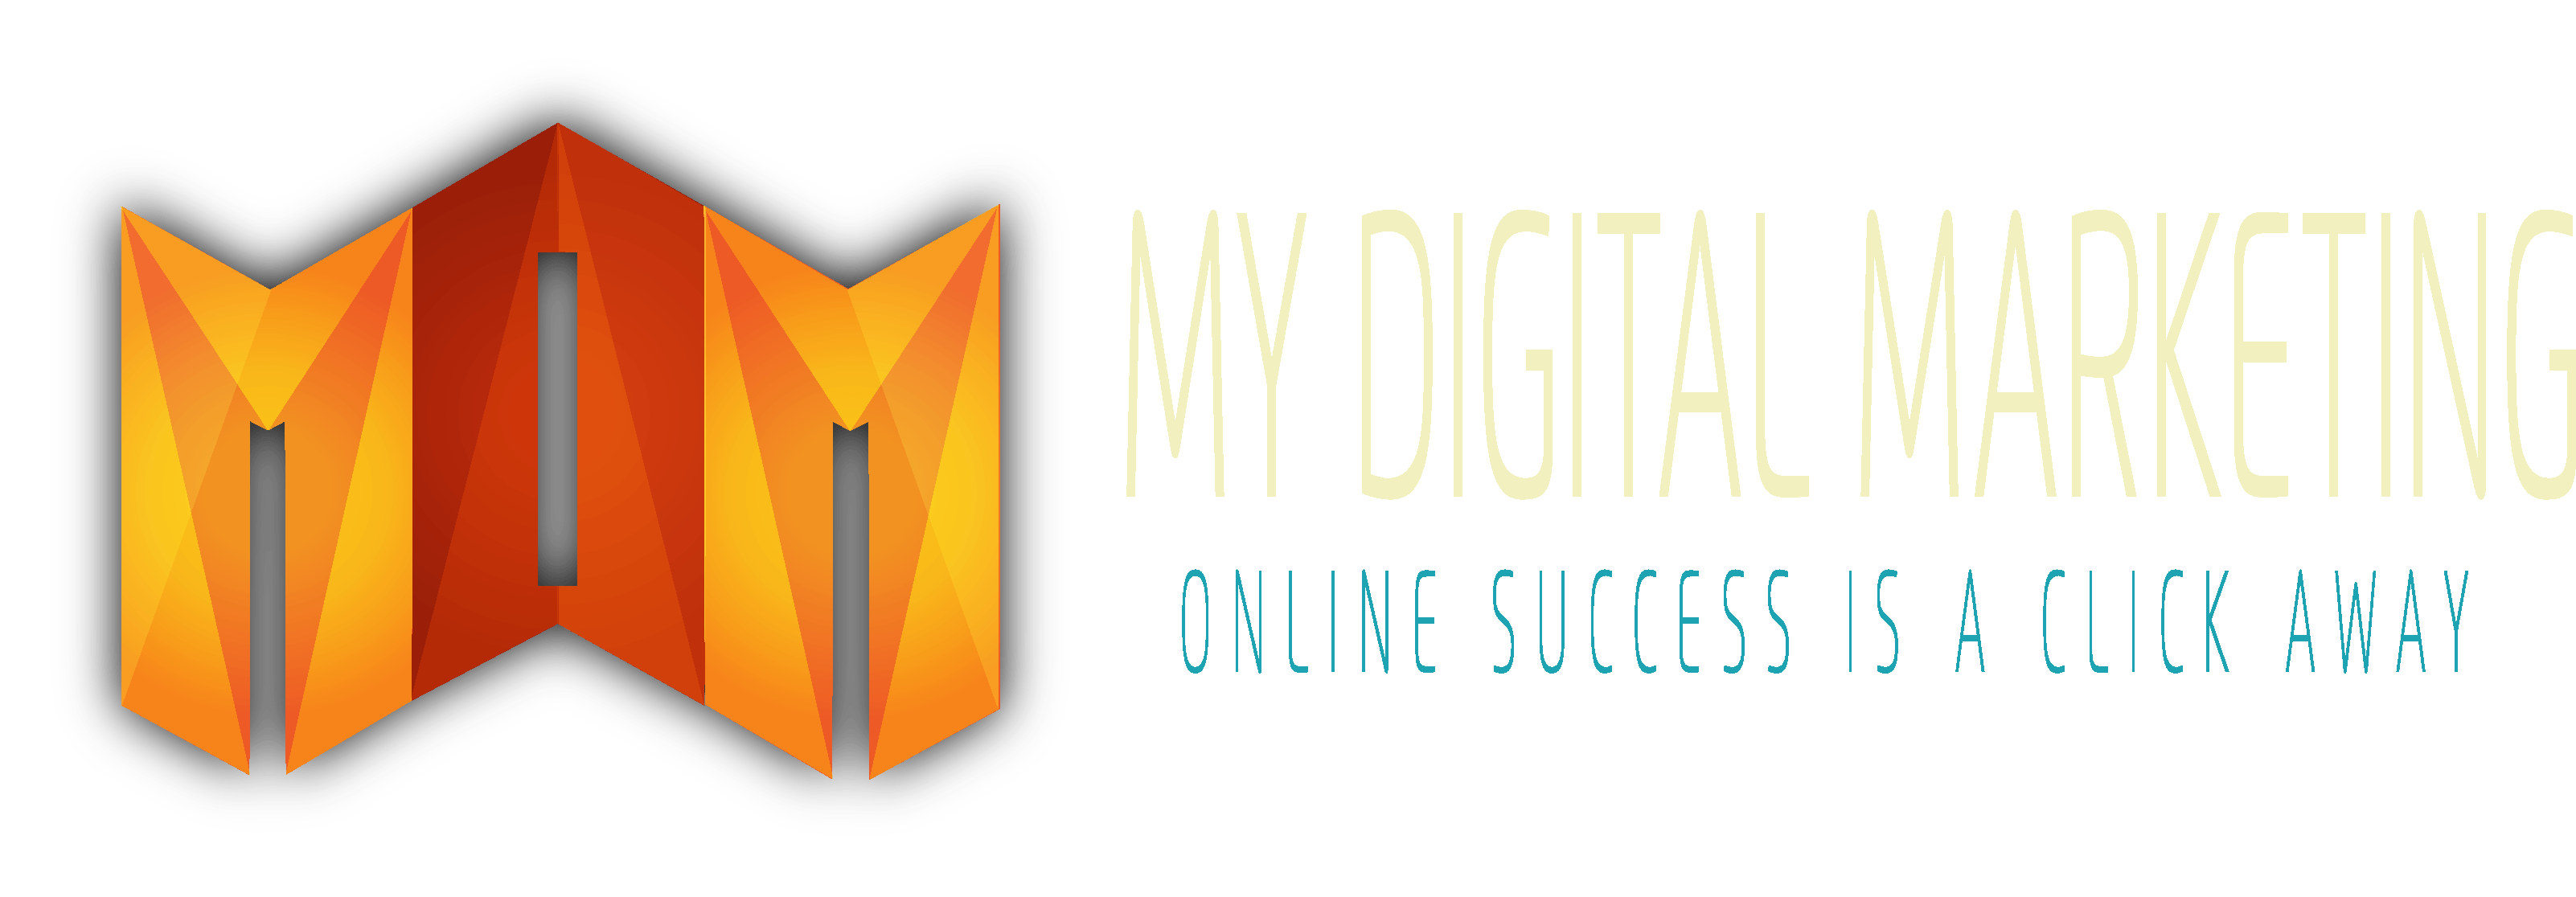 My Digital Marketing